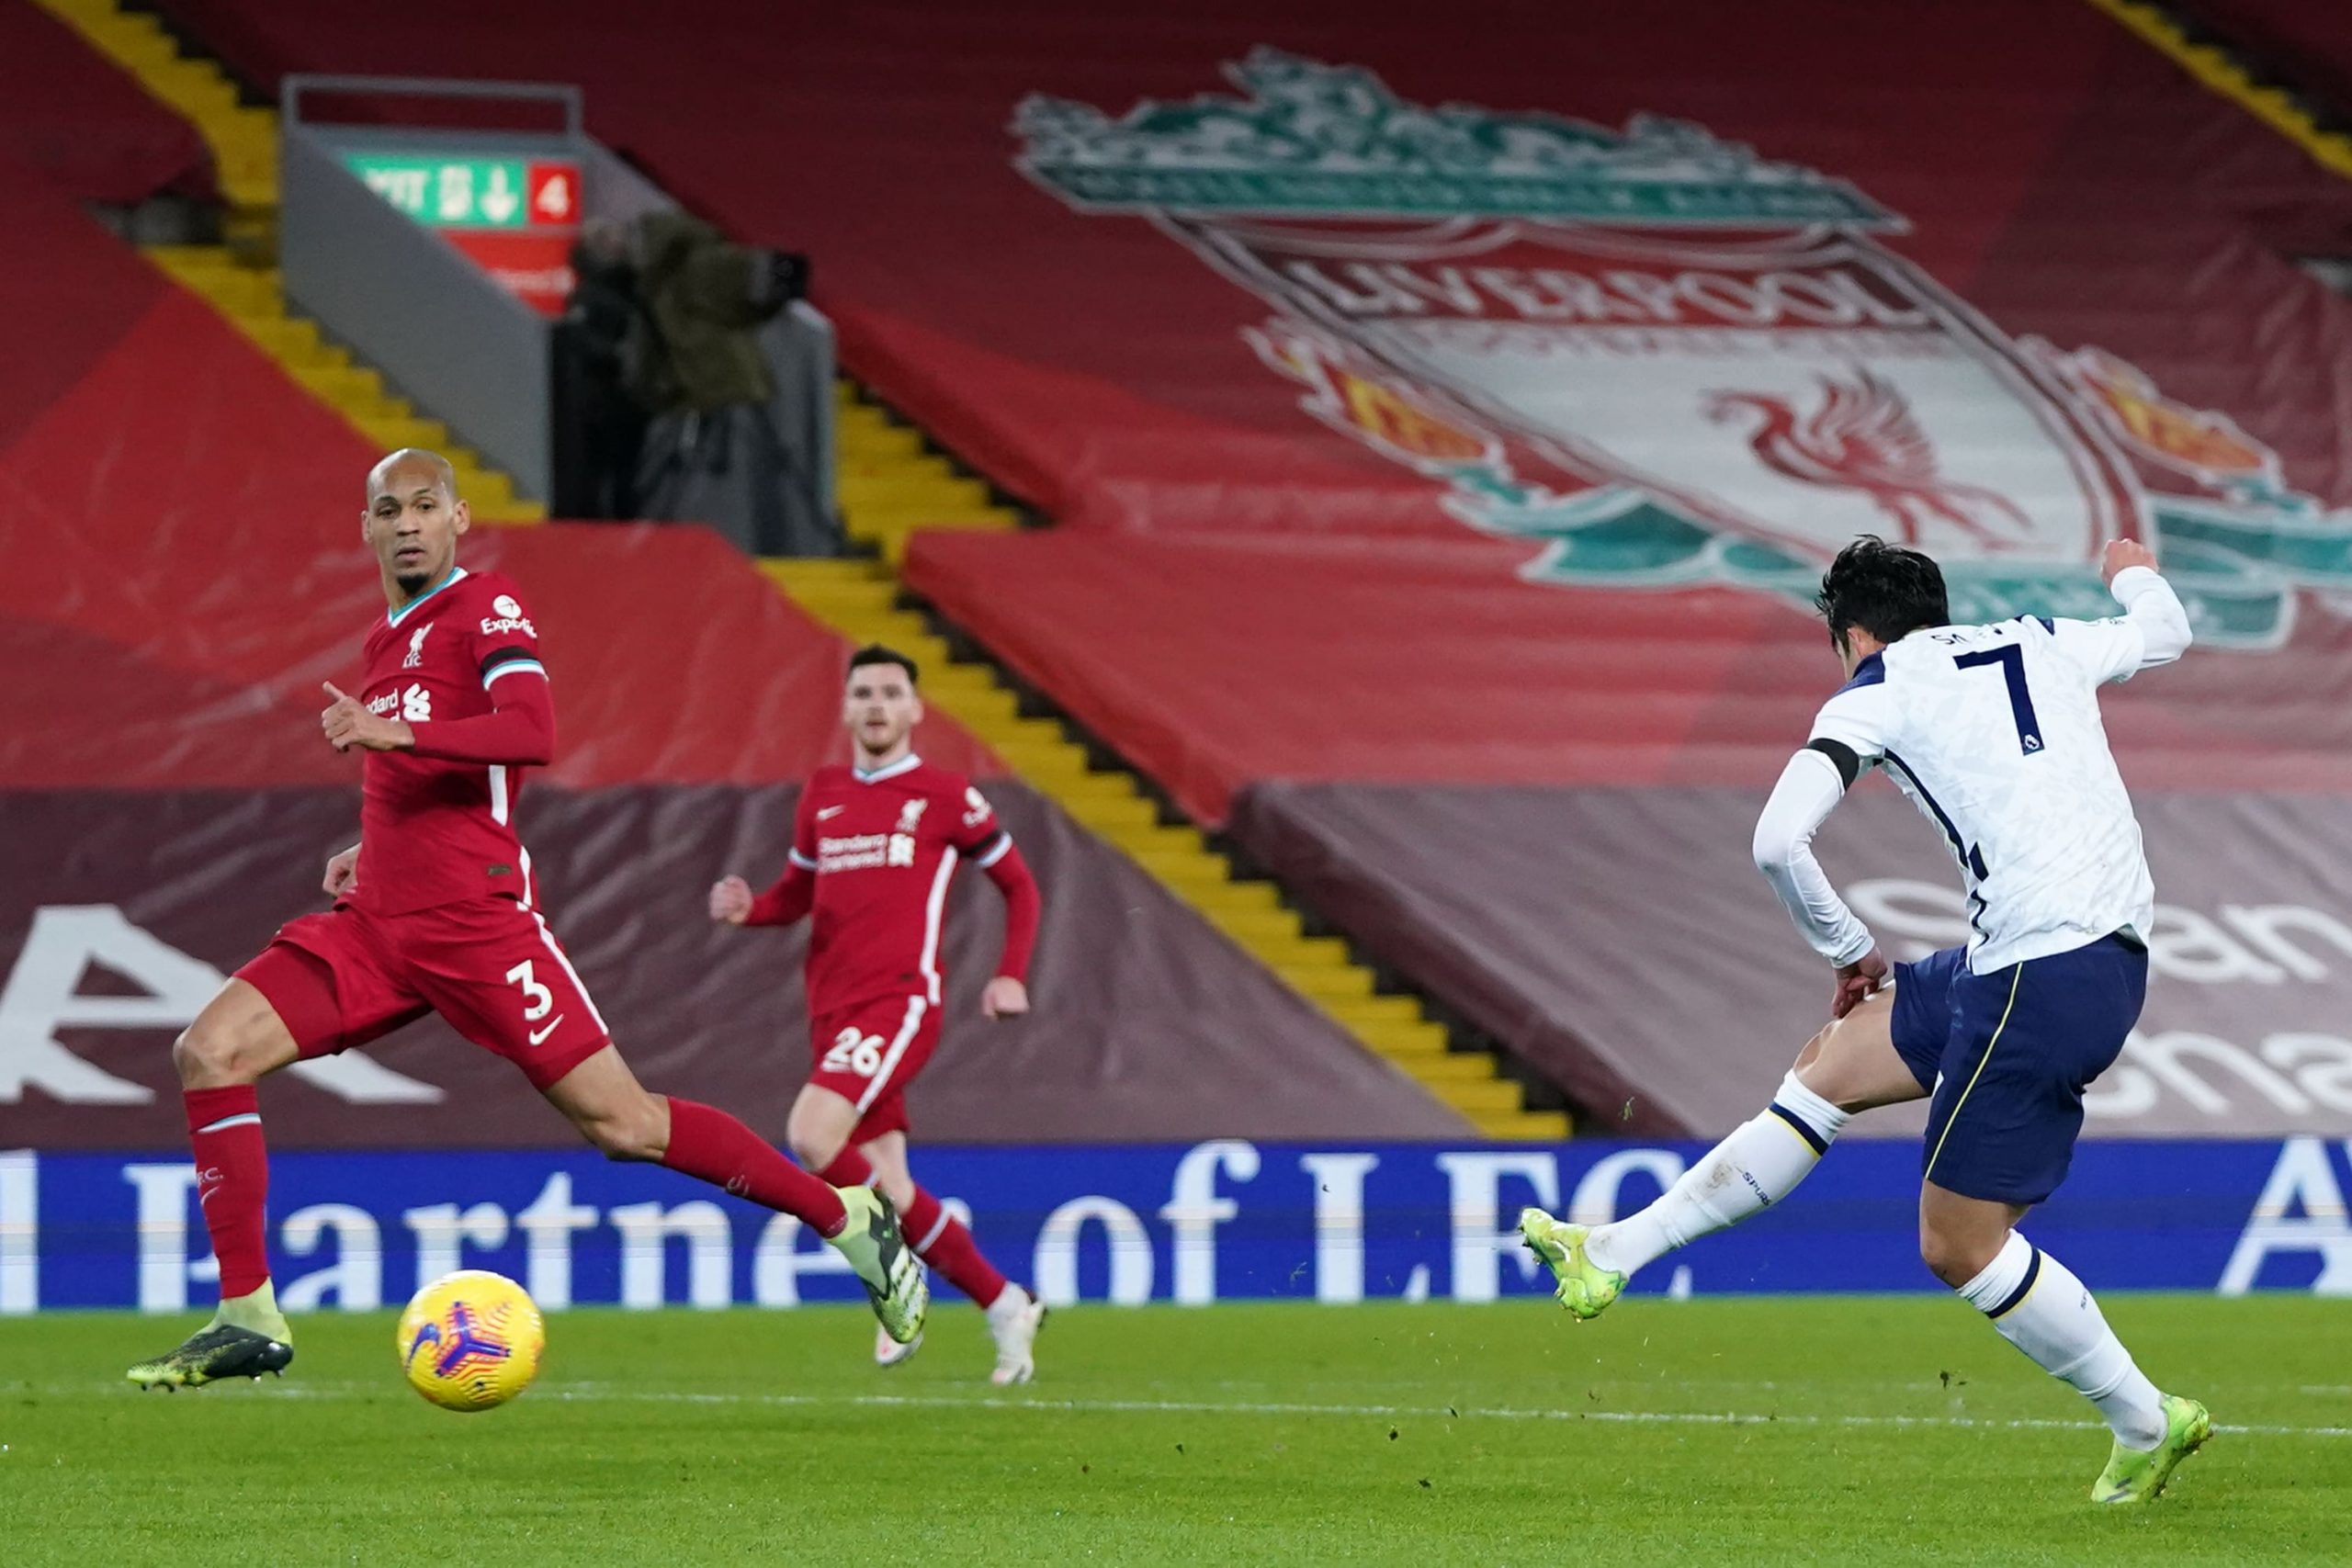 Heung-min Son equalized for the visitors but Liverpool came back to win 2-1. (GETTY Images)